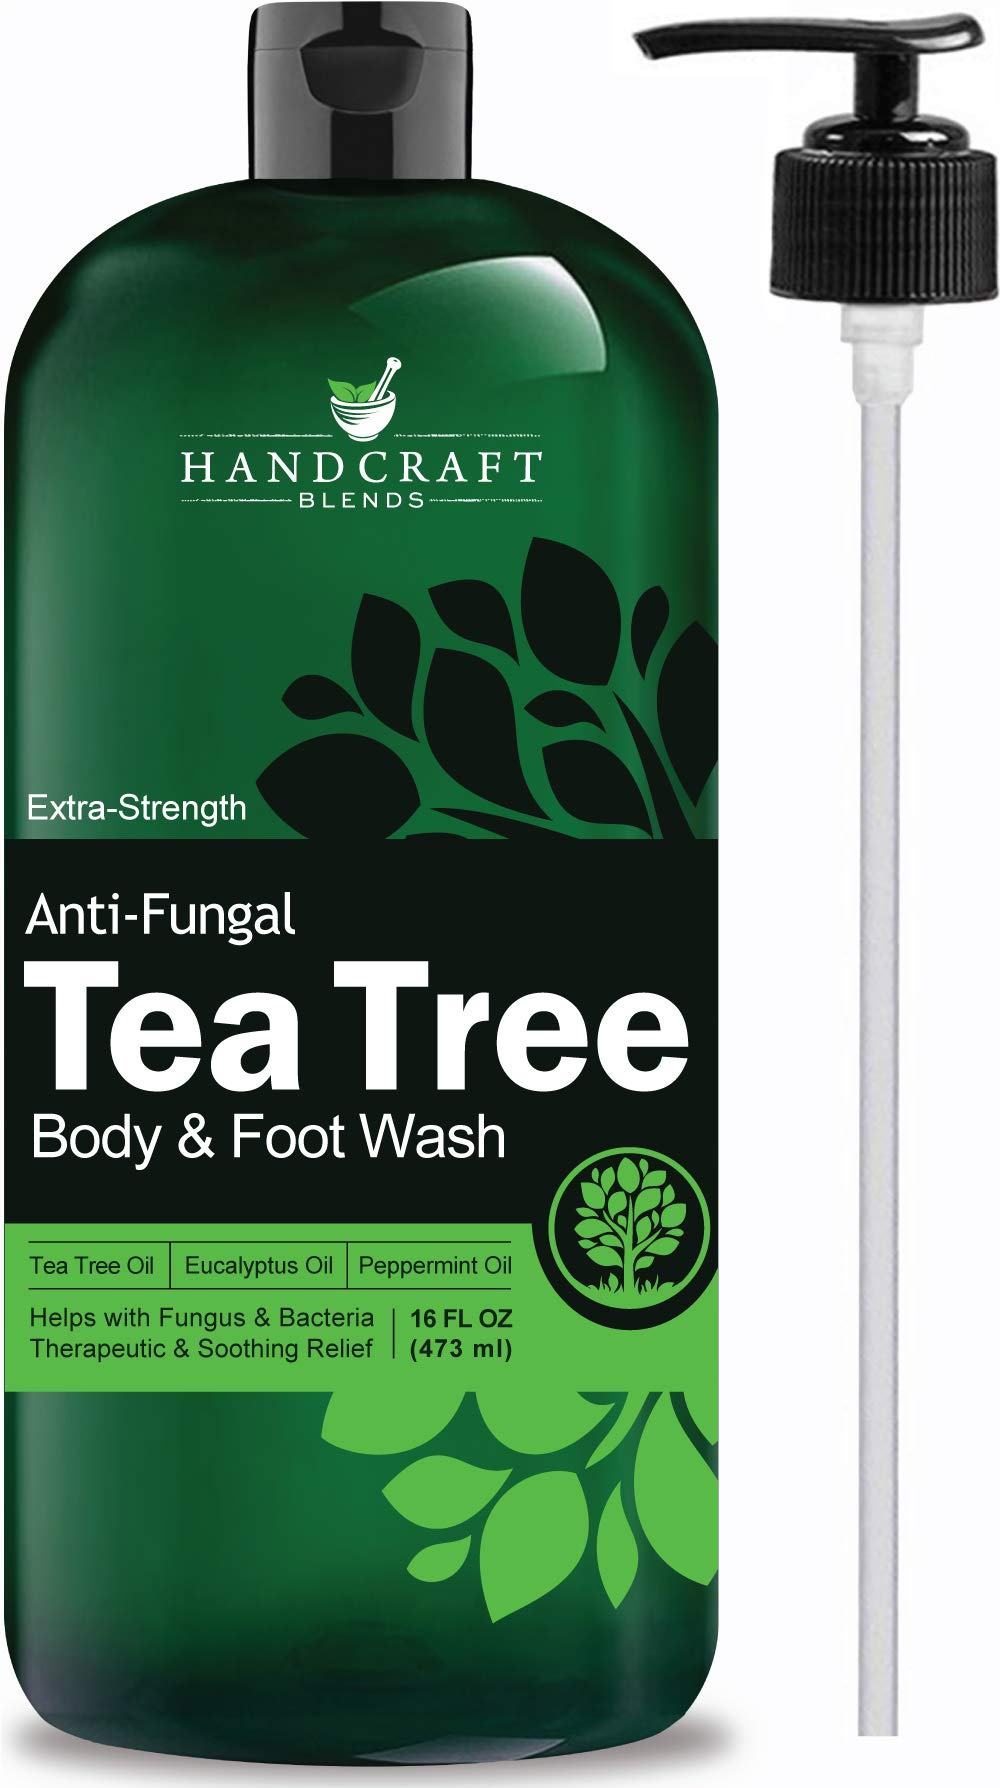 Handcraft Antifungal Tea Tree Oil Body Wash and Foot Wash - Huge 16 OZ - All Natural - Extra Strength Professional Grade - Helps Soothe Athlete Foot, Body Itch, Jock Itch and Eczema by Handcraft Blends